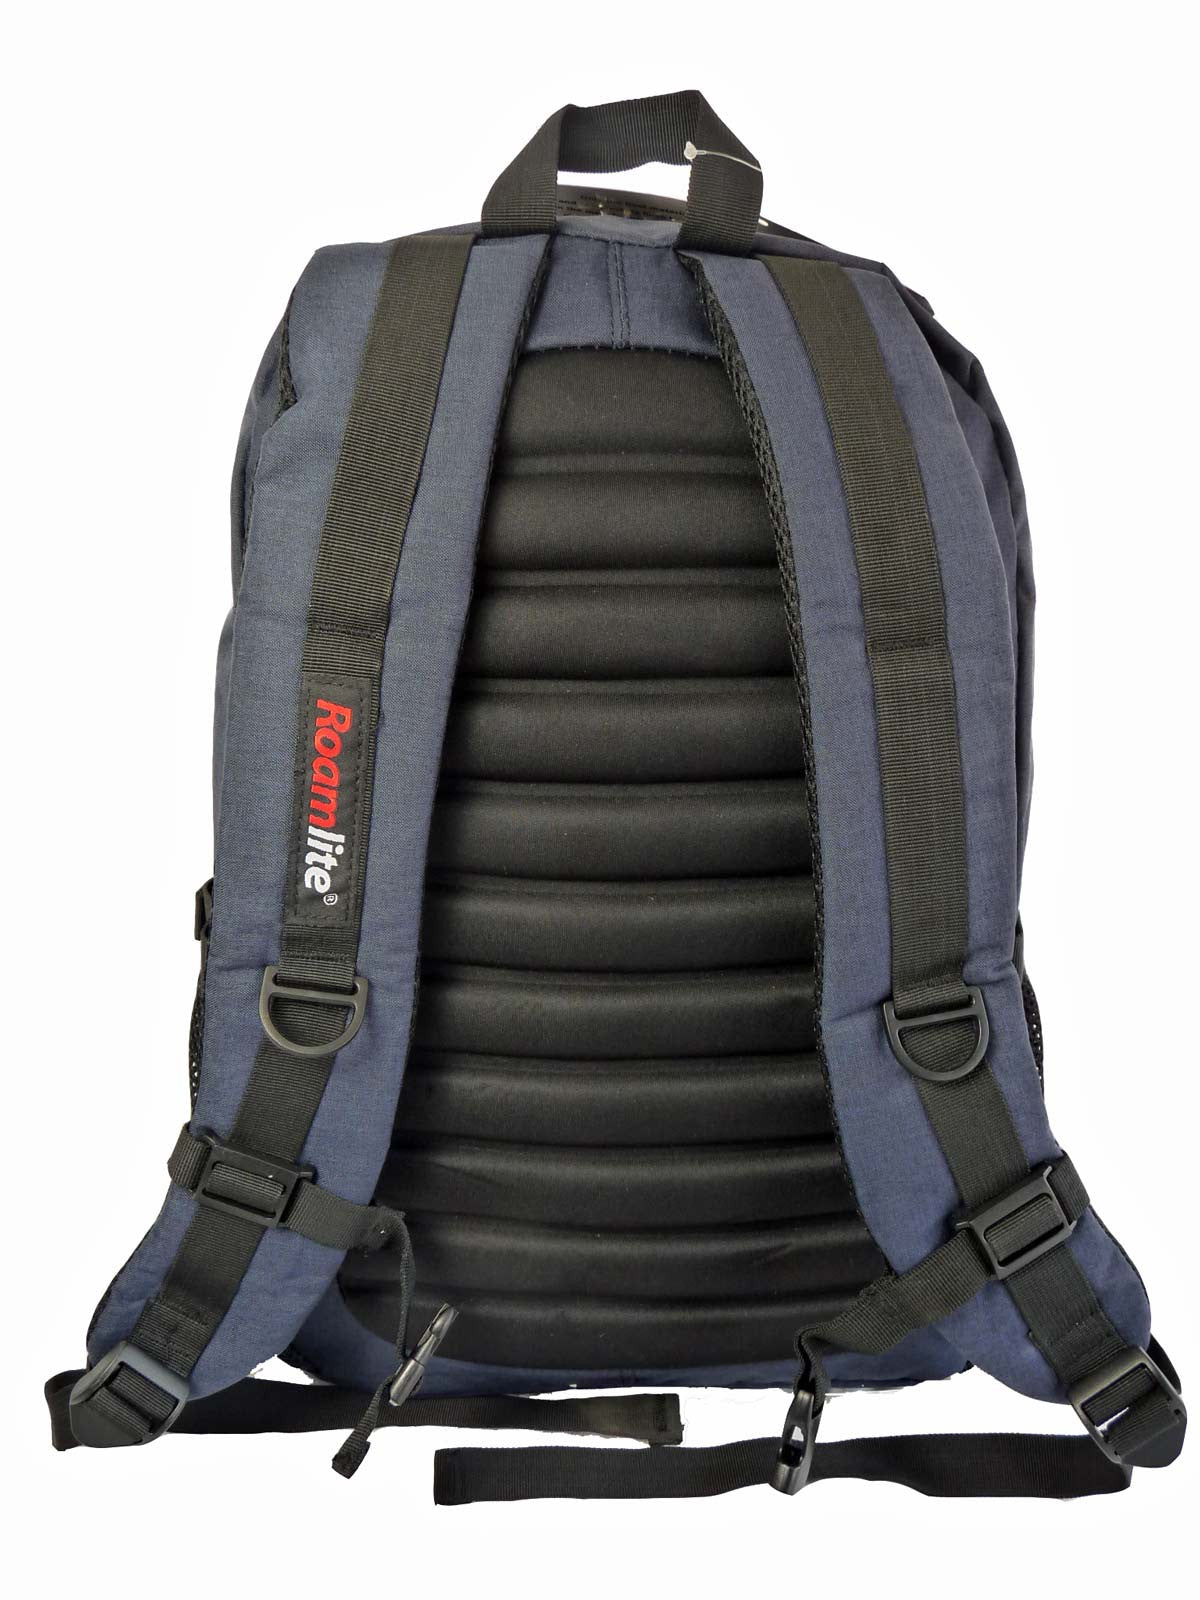 Laptop Macbook Backpack Rucksack Bag RL45N Back View